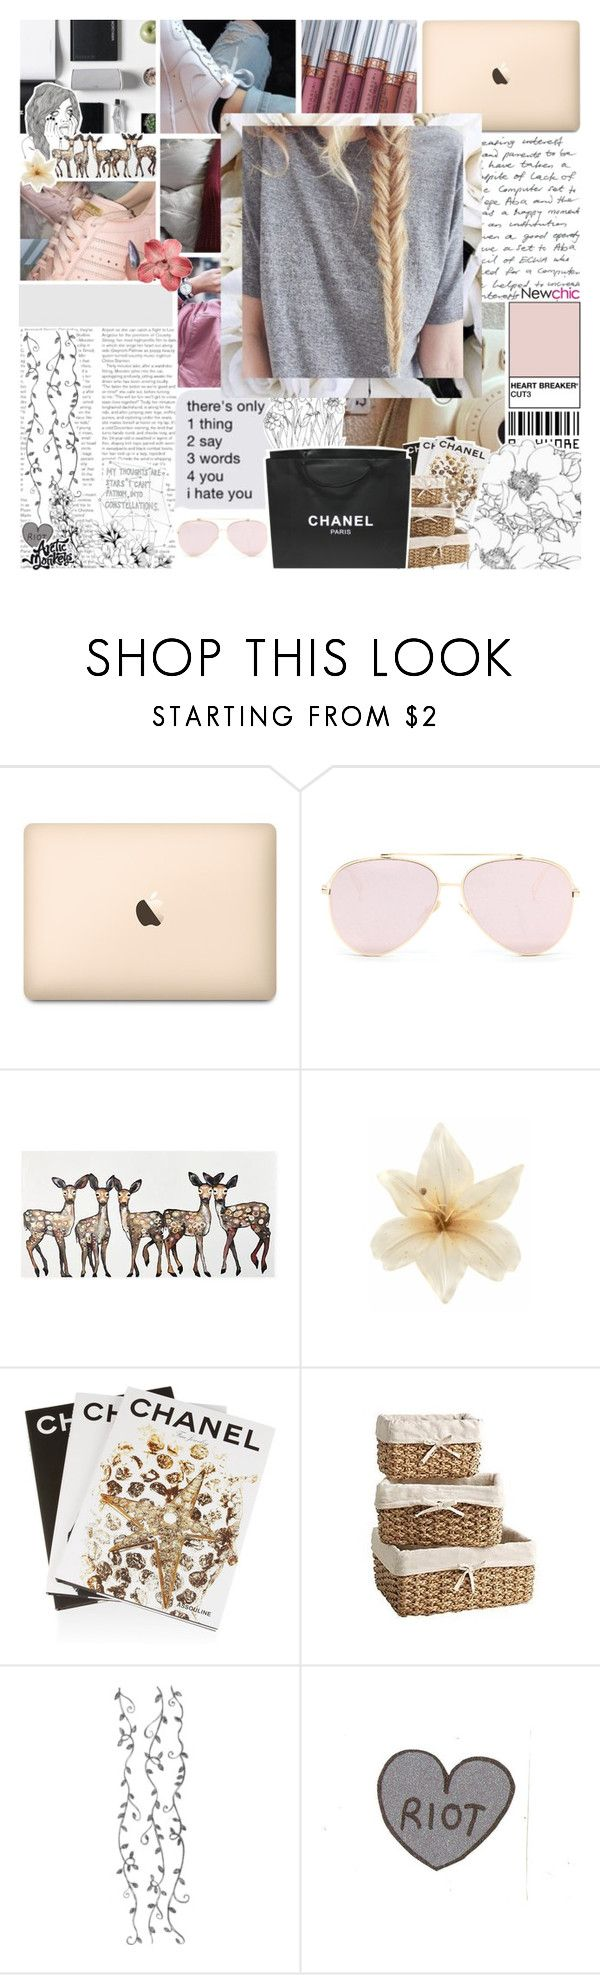 """""""~a true relationship is someone who accepts your past, supports your present, loves you, and encourages your future"""" by itsfashioninfinity ❤ liked on Polyvore featuring WALL, Clips, Assouline Publishing, Pier 1 Imports and Chanel"""